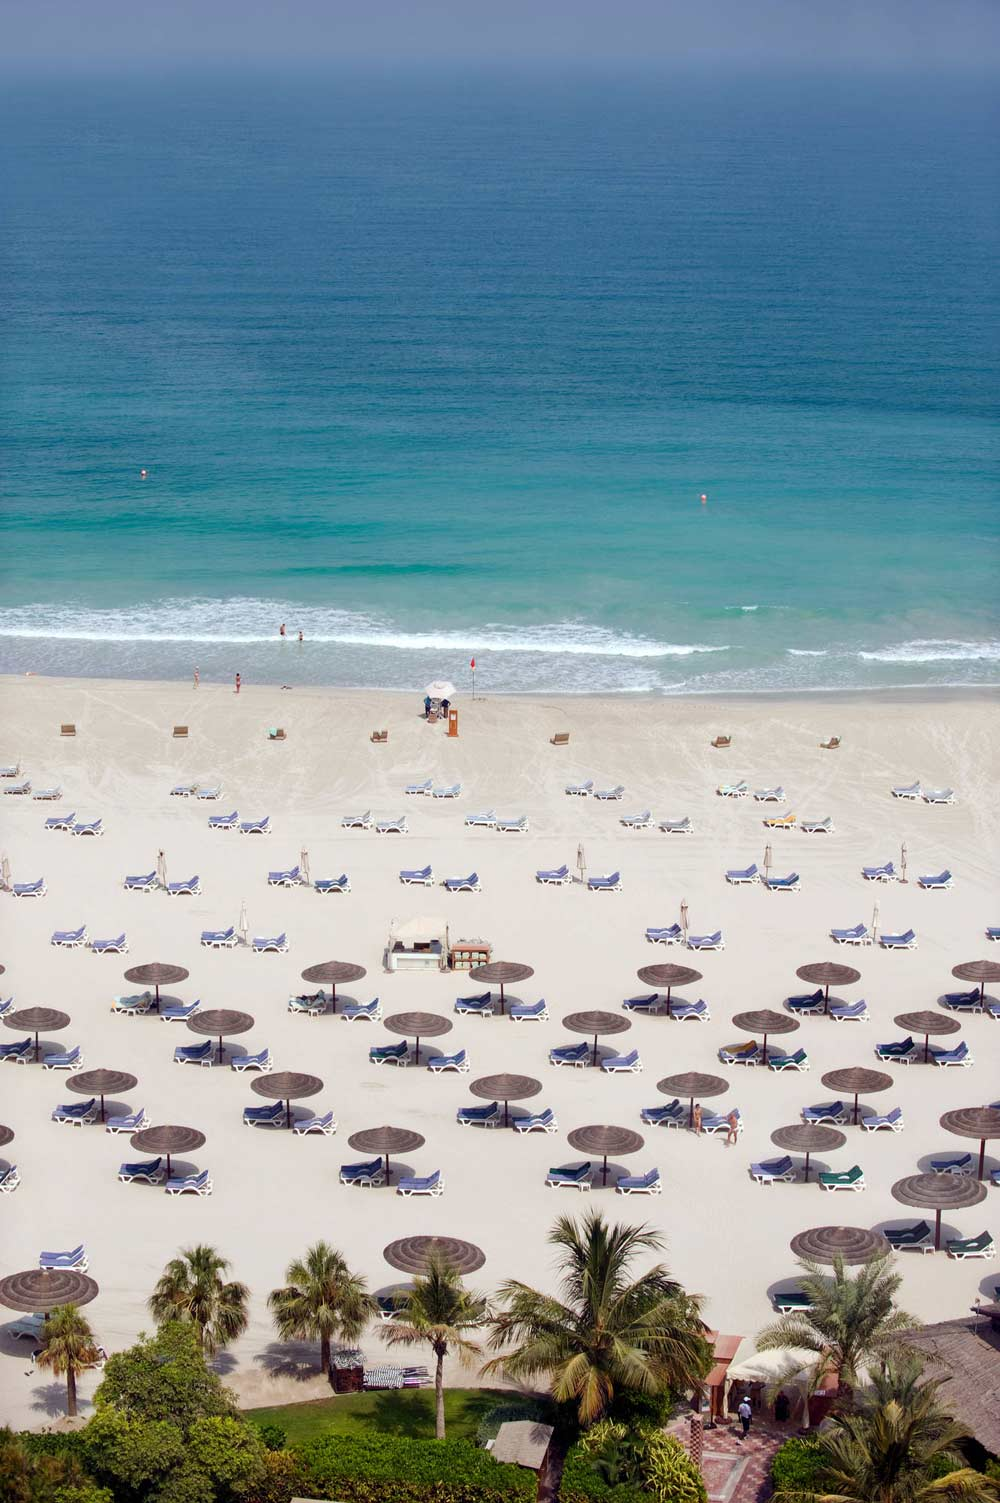 Private Beach at Jumeirah Beach HotelDubaiUnited Arab Emirates